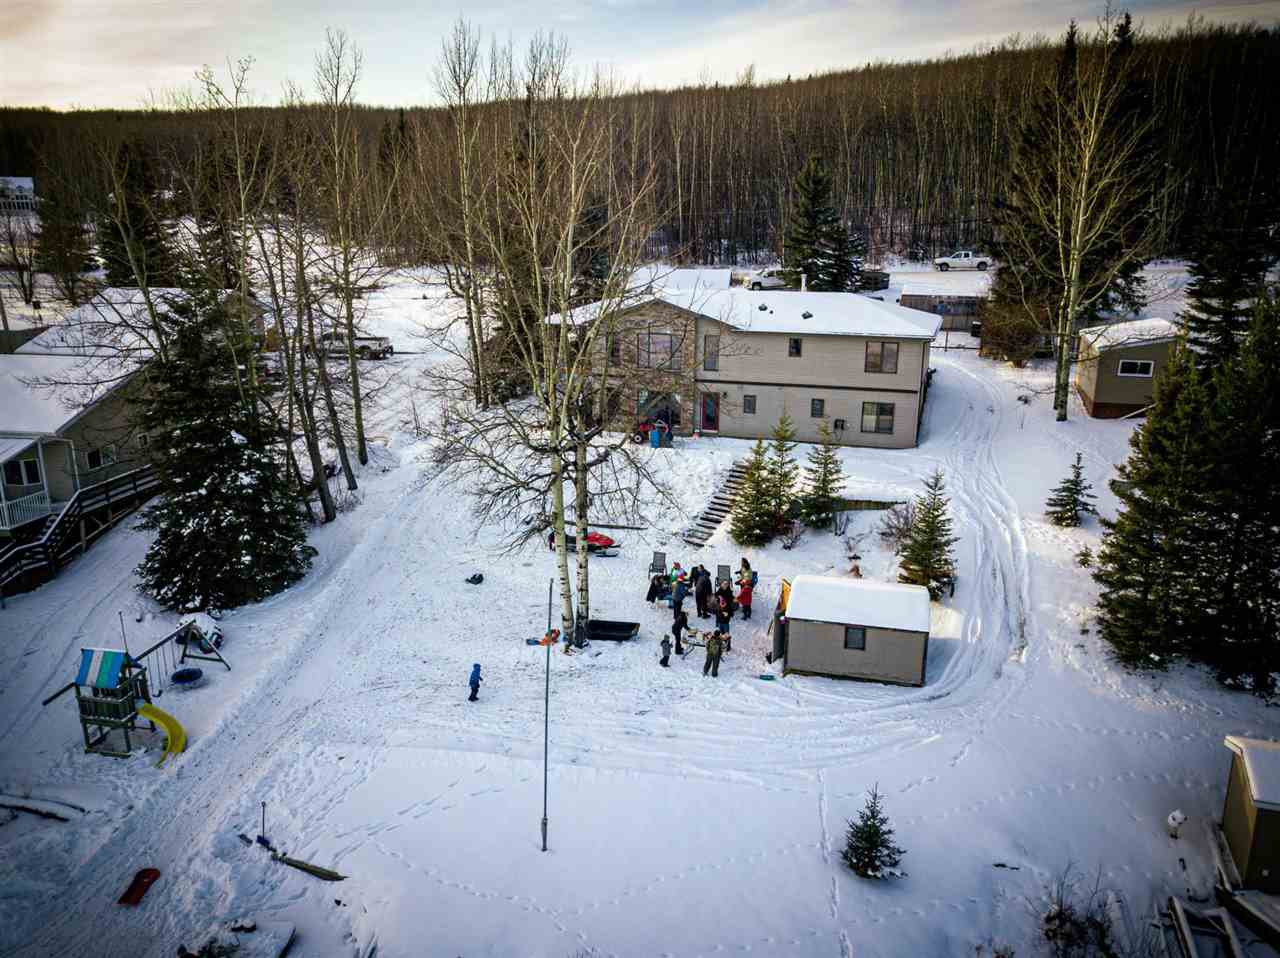 Photo 16: Photos: 13759 GOLF COURSE Road: Charlie Lake Manufactured Home for sale (Fort St. John (Zone 60))  : MLS®# R2453494